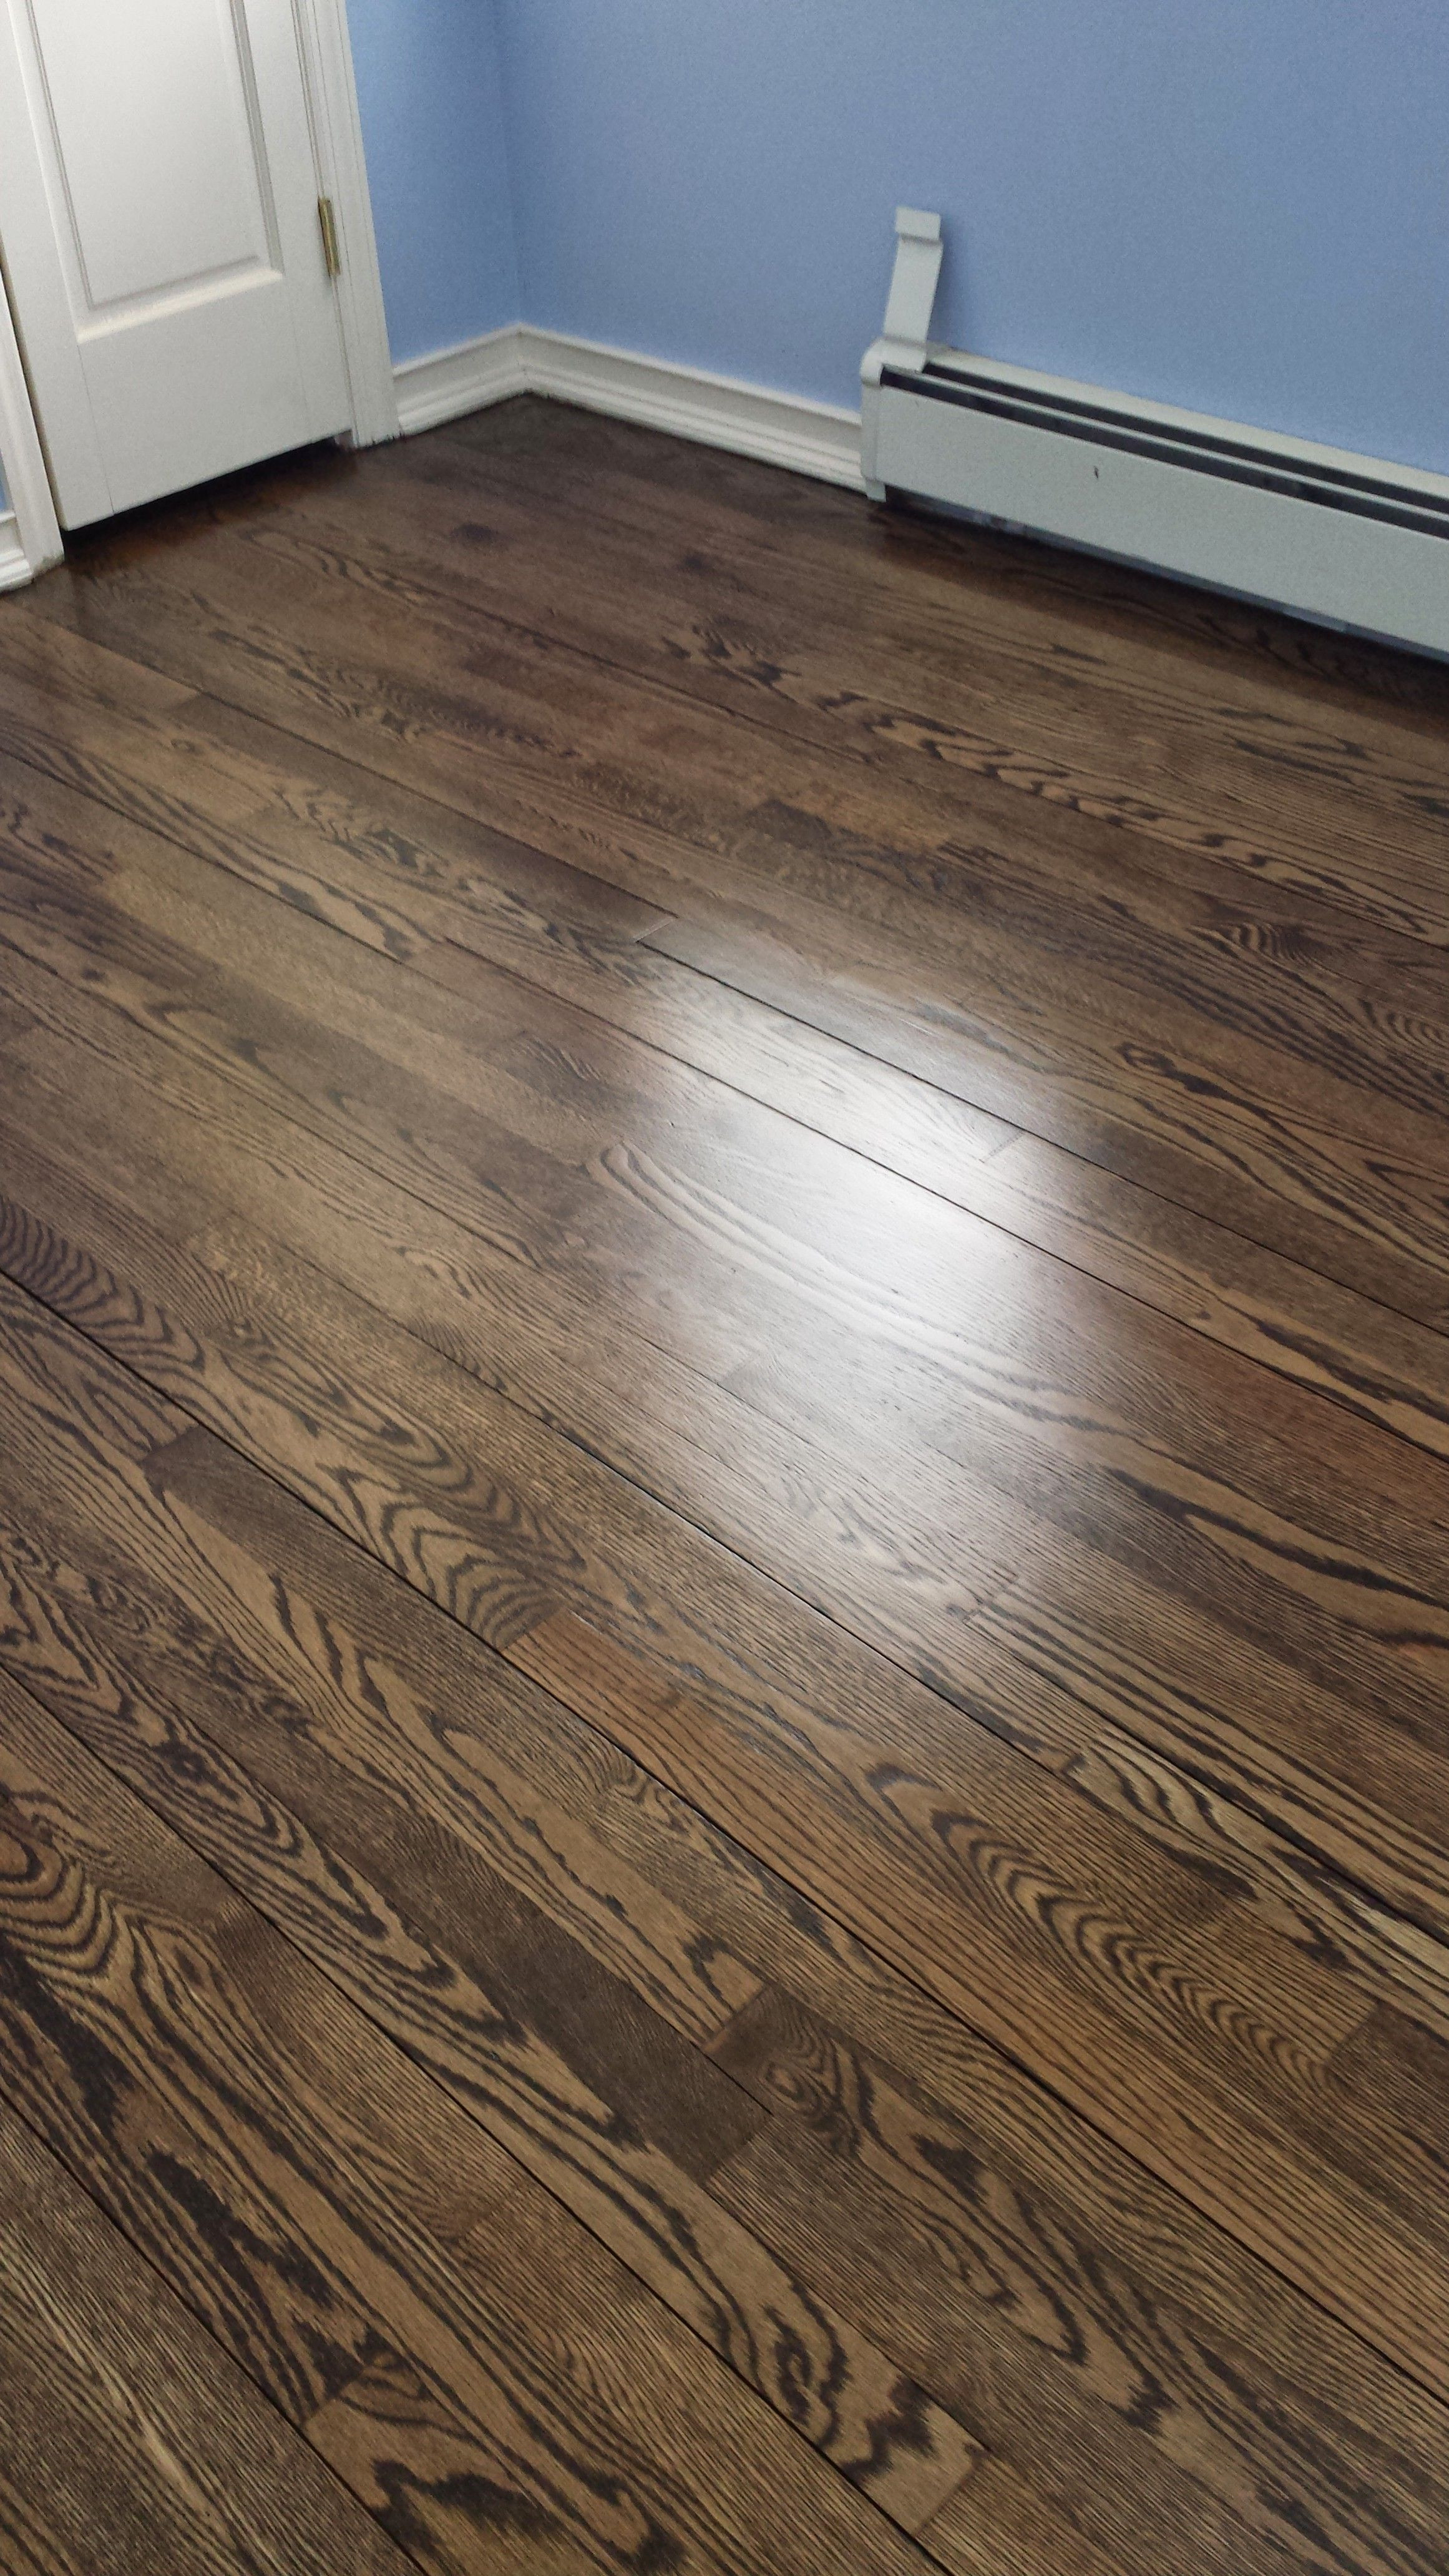 cost to sand and stain hardwood floors of how much to refinish wood floors great methods to use for within how much to refinish wood floors great methods to use for refinishing hardwood floors